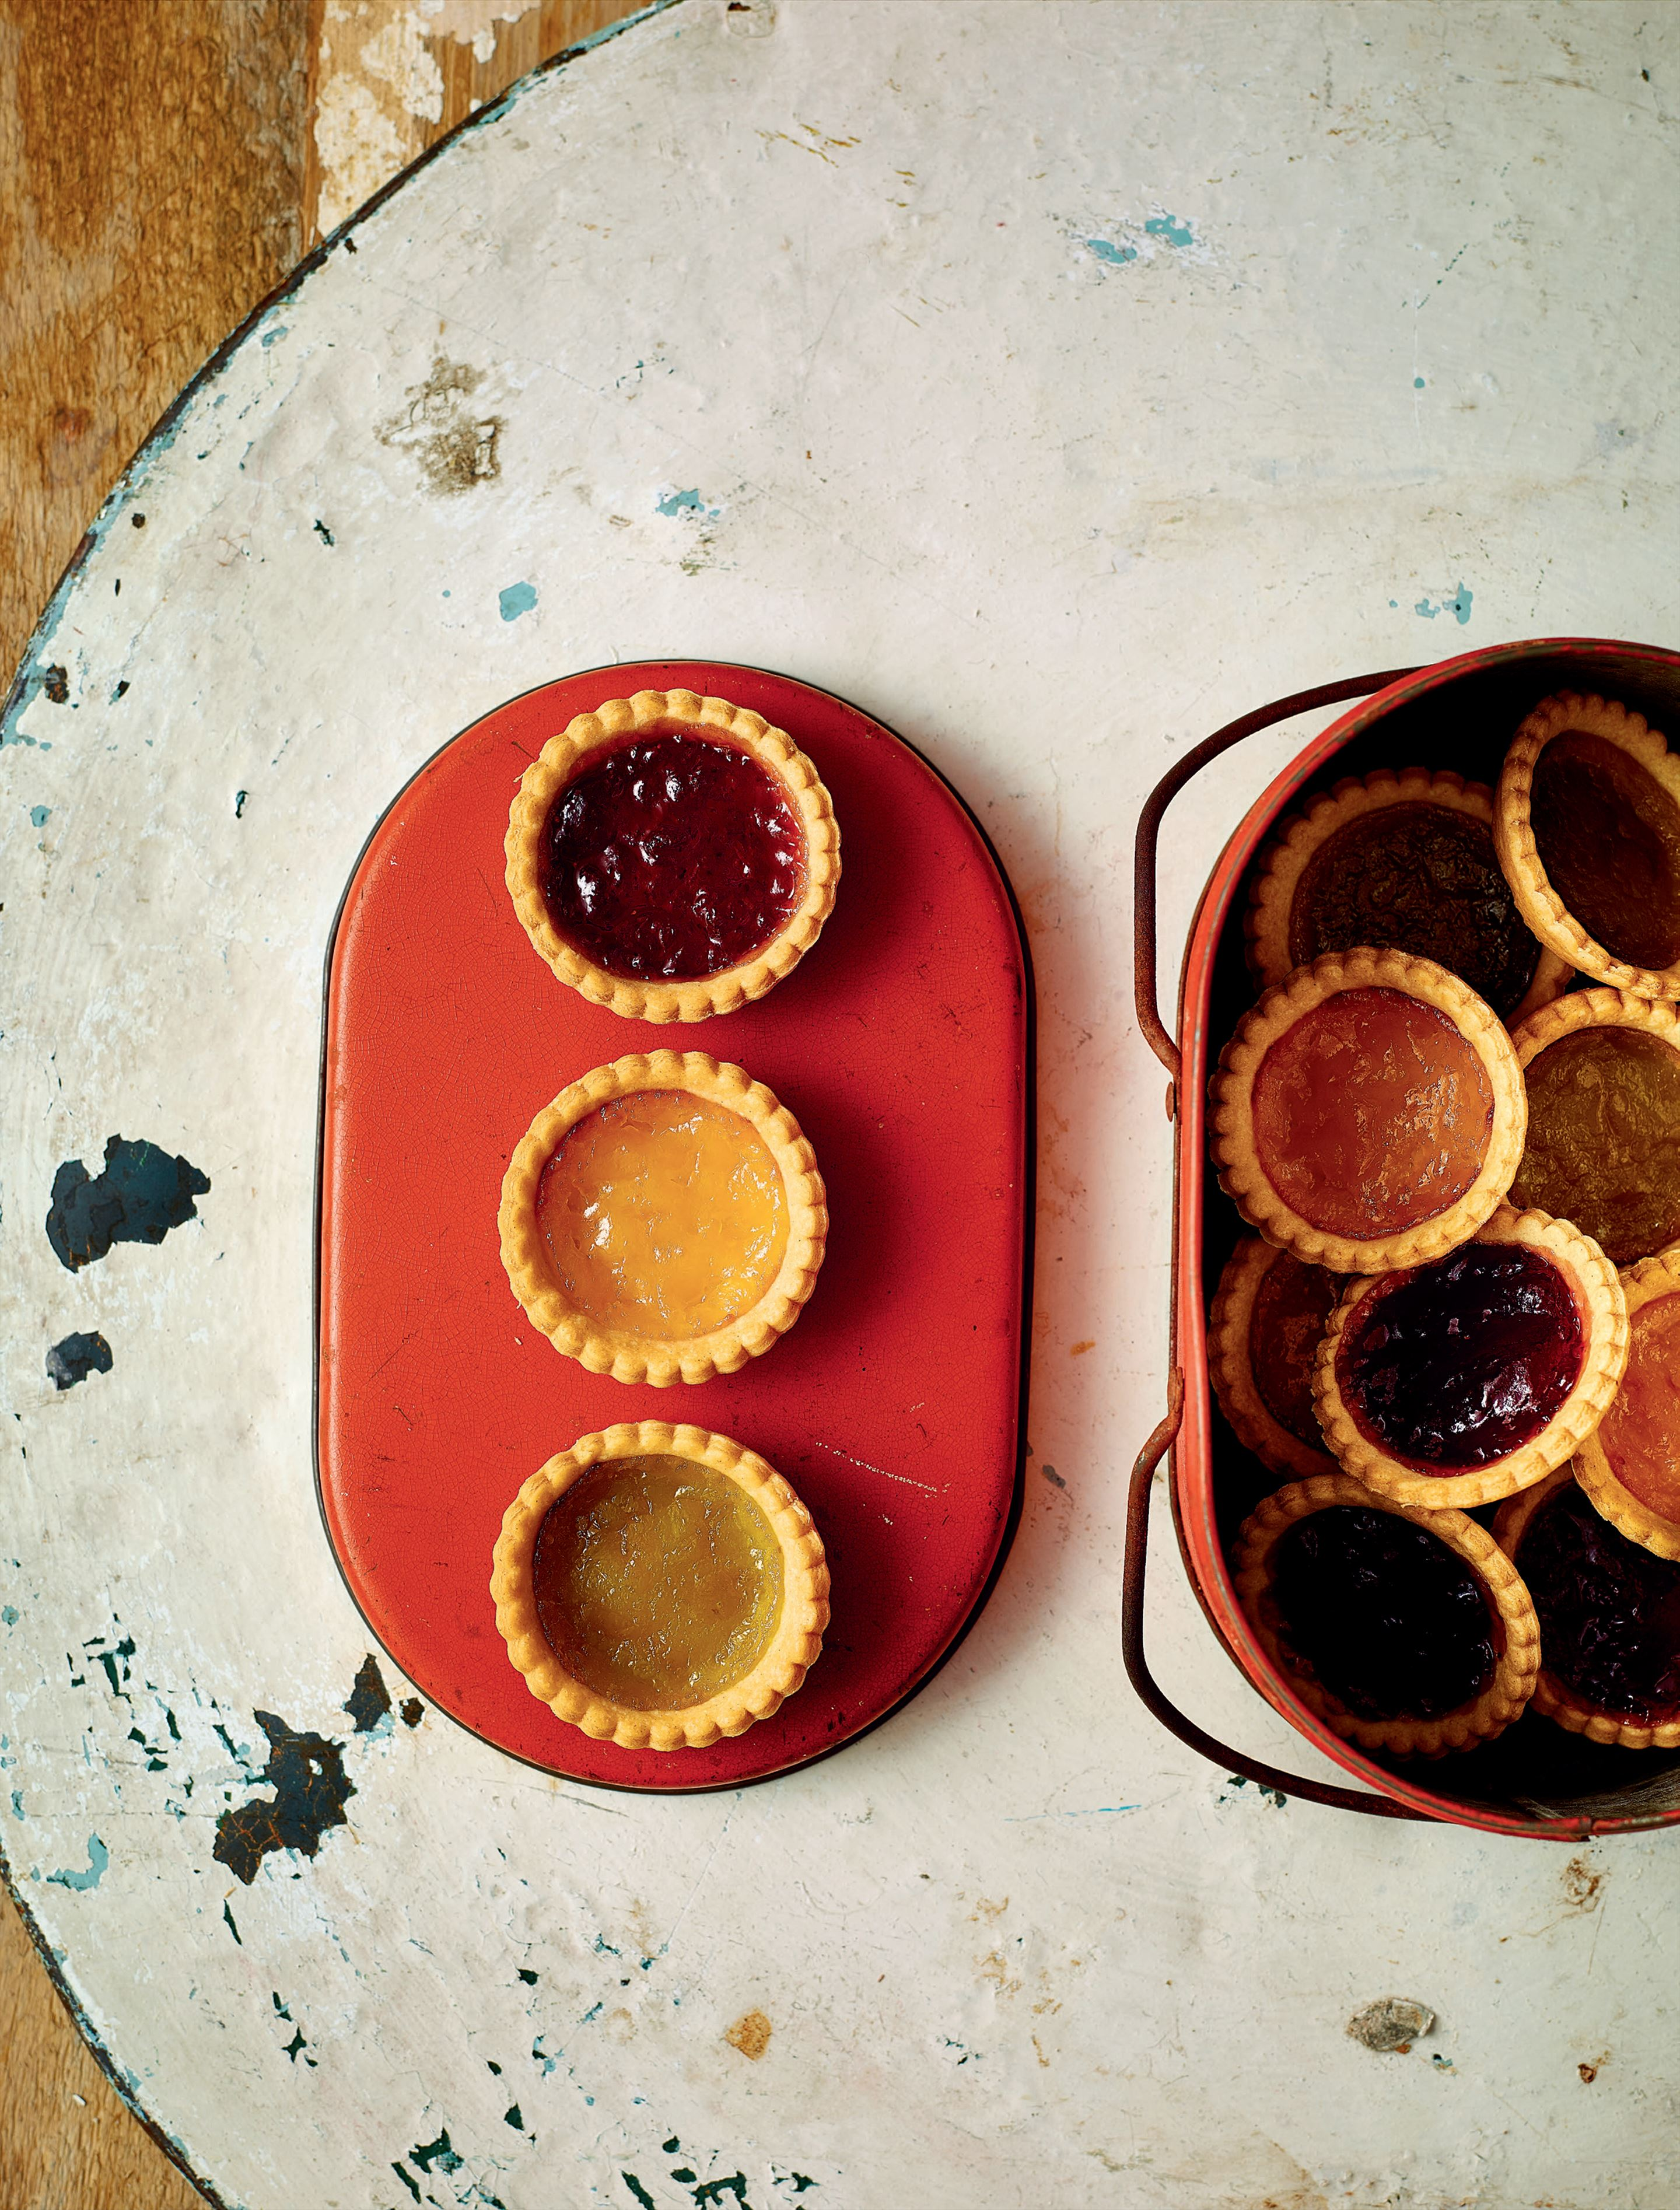 Traffic light jam tarts